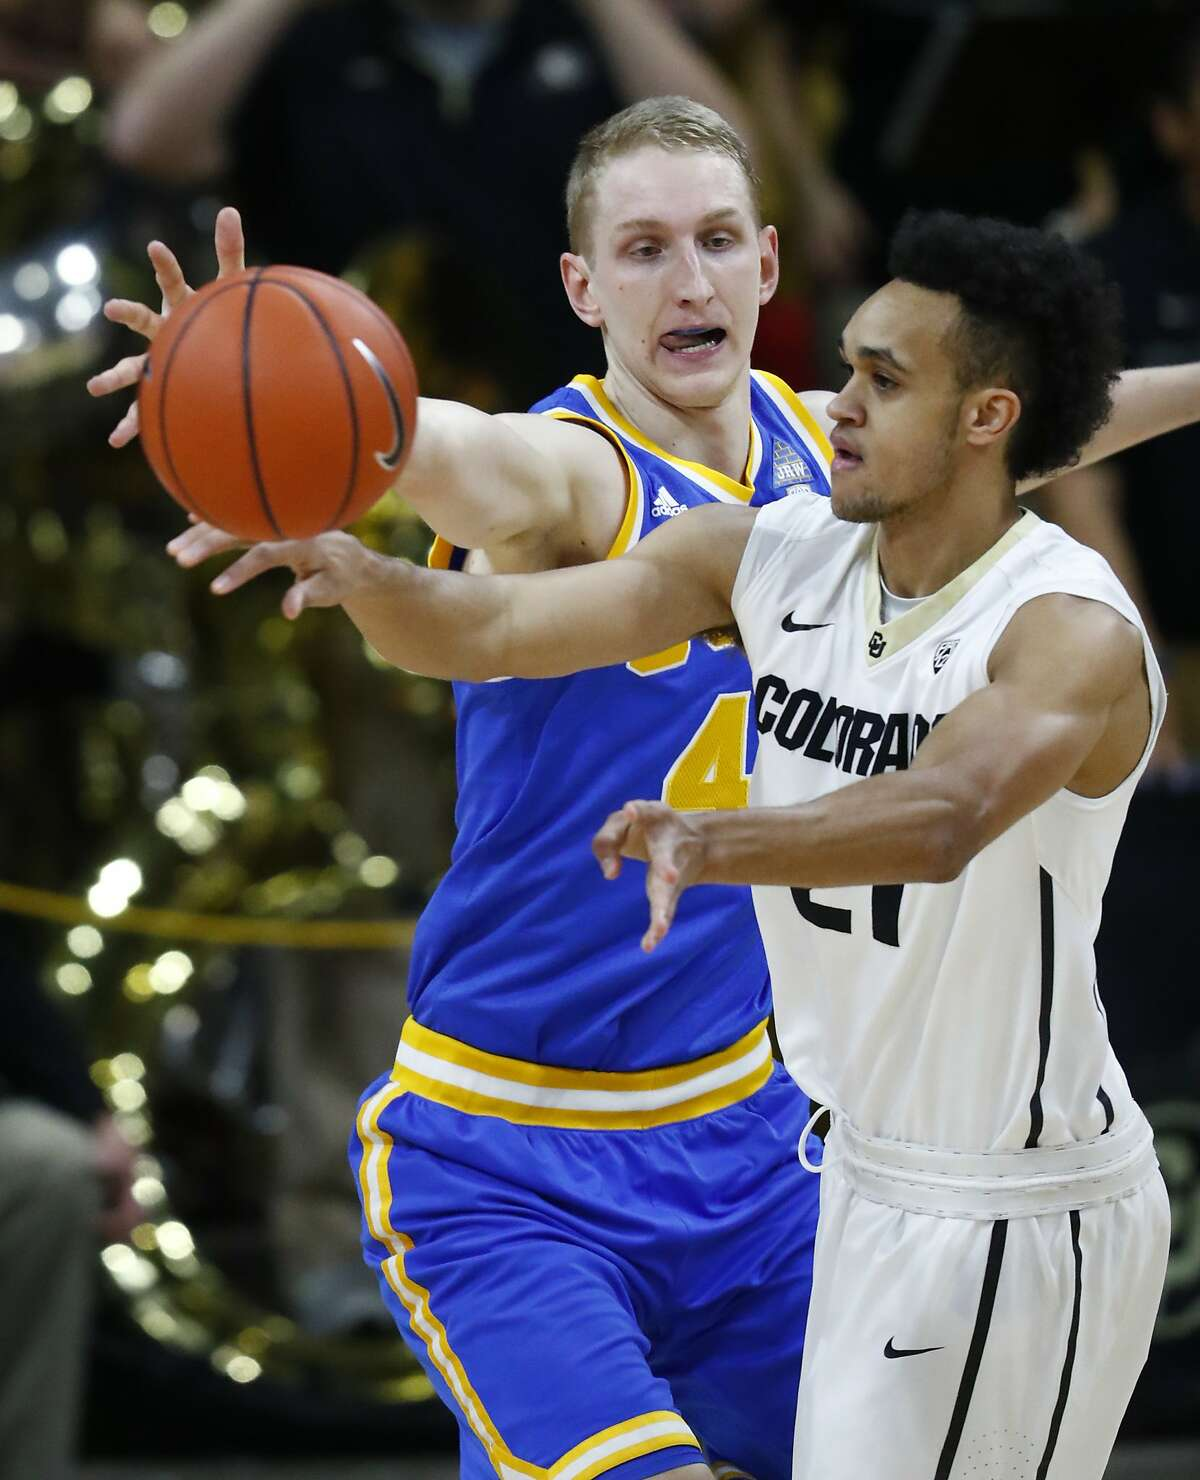 Stats Led Colorado University at 18.1 points, 4.4 assists and 1.2 steals per game while shooting 51 percent from the field and 81 percent from the free throw line in 2016-17 season according to his cubuffs.com bio.